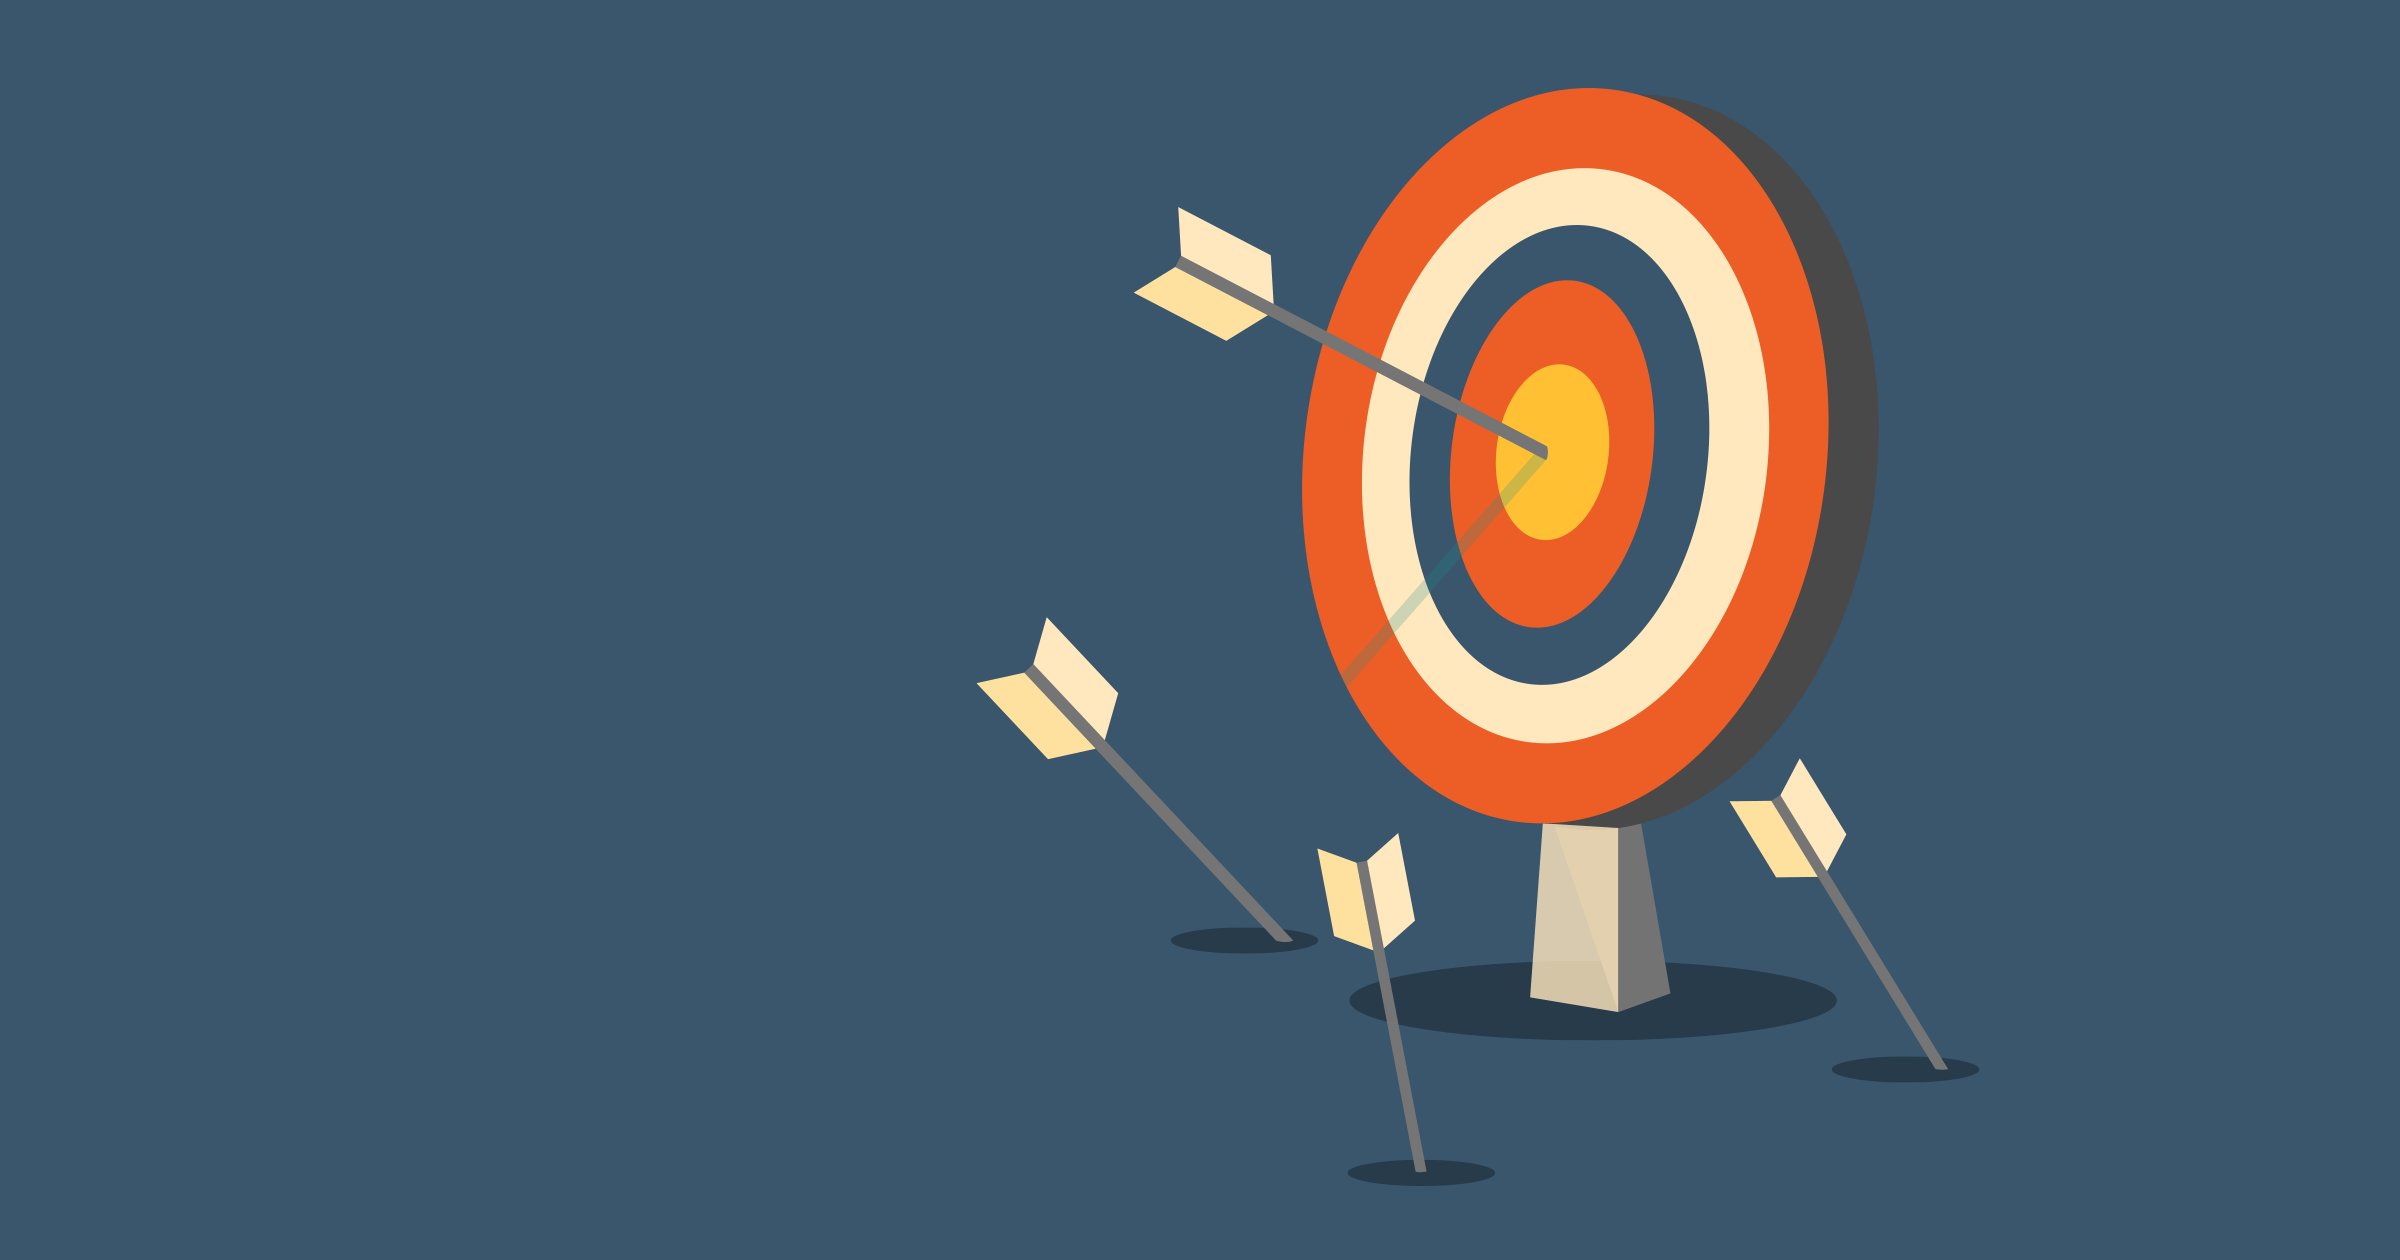 An archery target with three arrows on the ground in front of it, and one arrow in the bullseye.